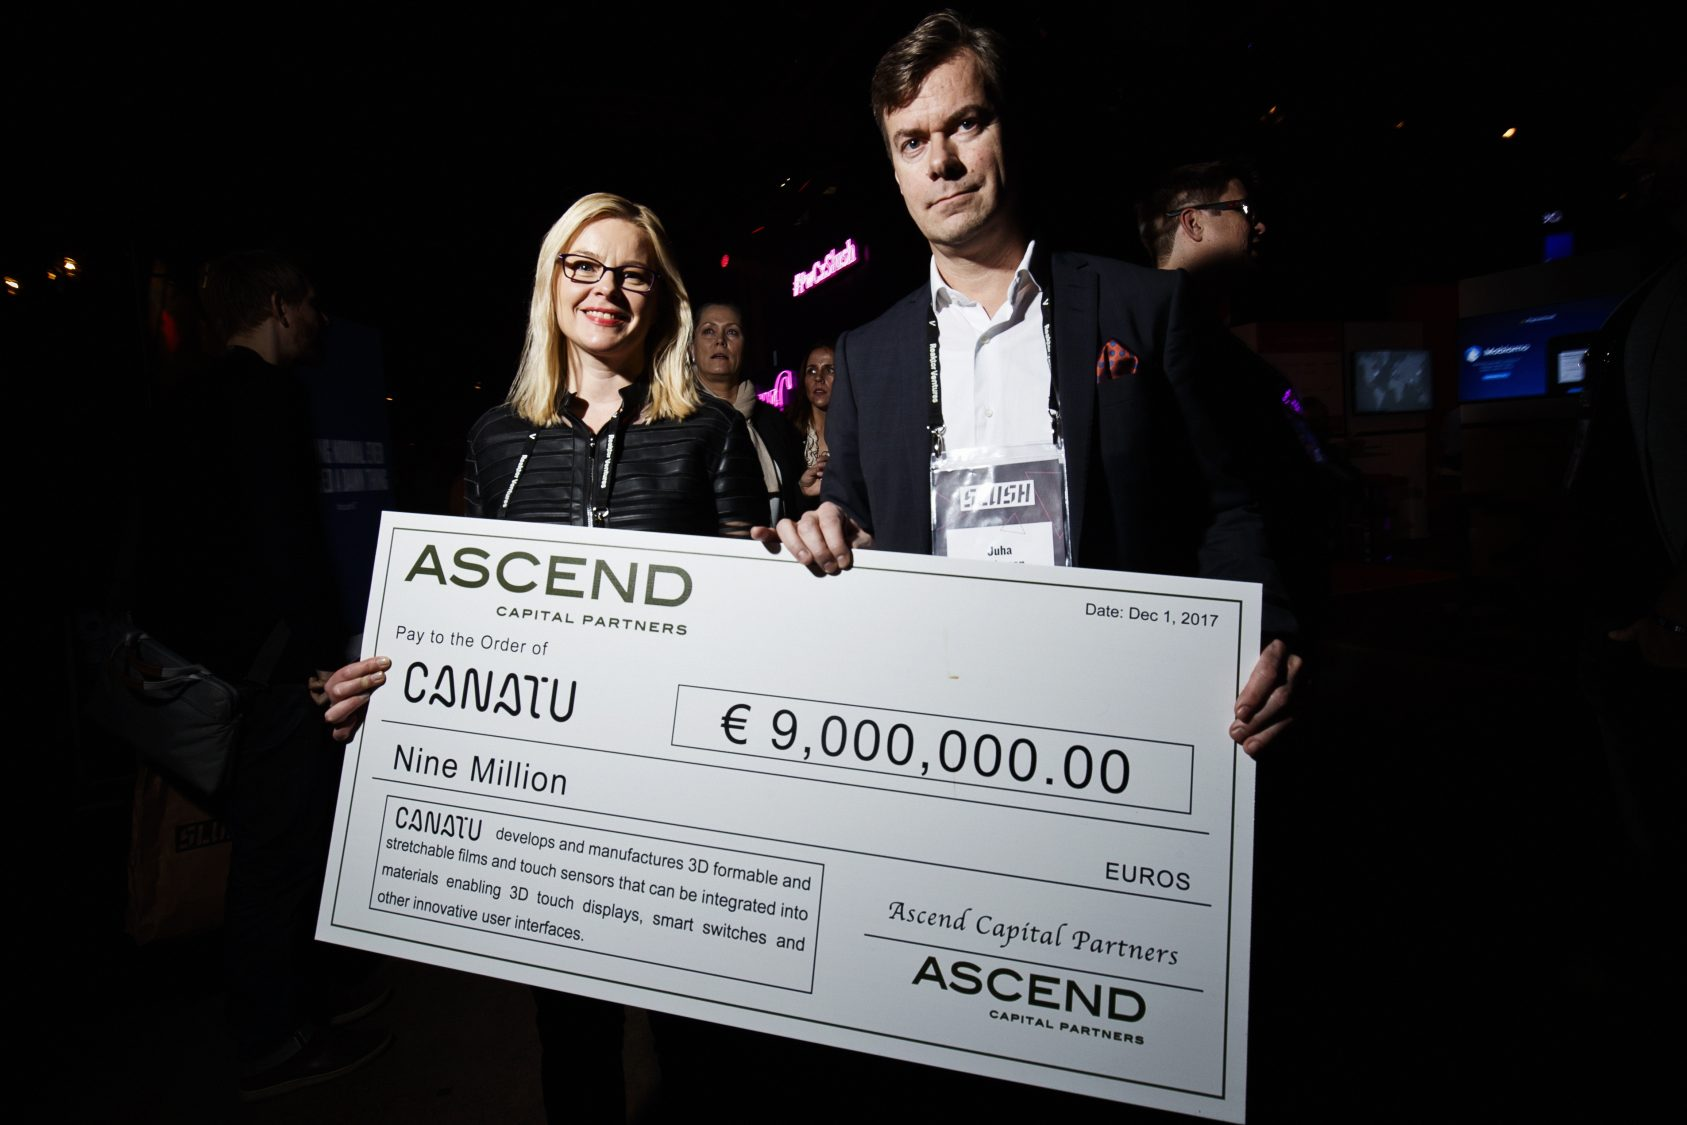 """Finnish Canatu visited Slush to announce a capital raise of 12 million euros from DENSO, Ascend Capital Partners and its existing investor Faurecia. Marketing director Katja Mälkki and CEO Juha Kokkonen were, understandably, excited. """"Slush is a show in itself with plenty of media attention, so announcing the news here doubles or triples our visibility,"""" Kokkonen noted."""